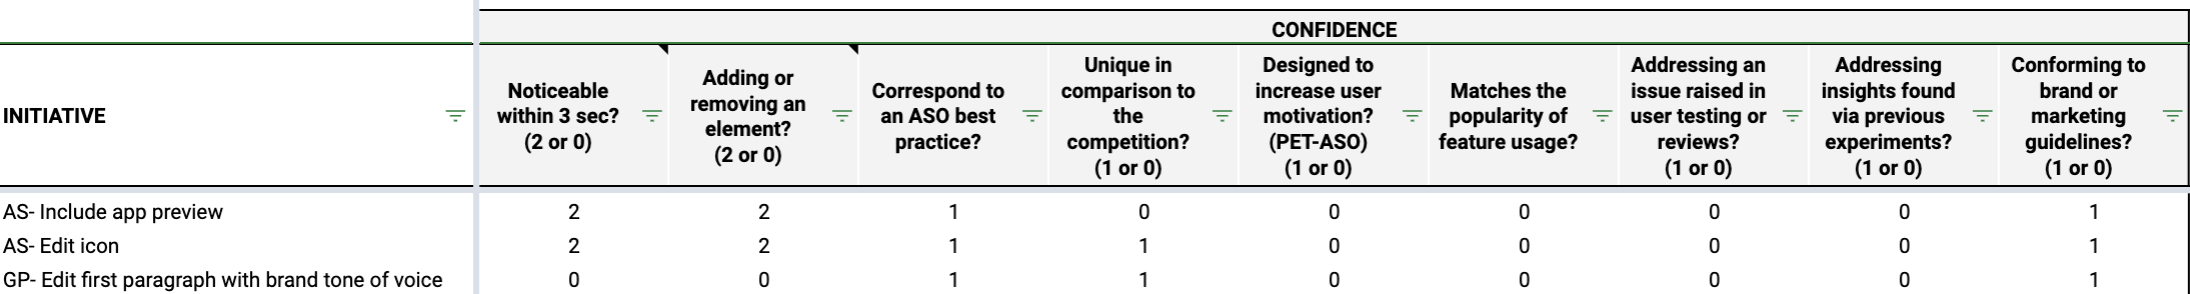 example of scoring for confidence